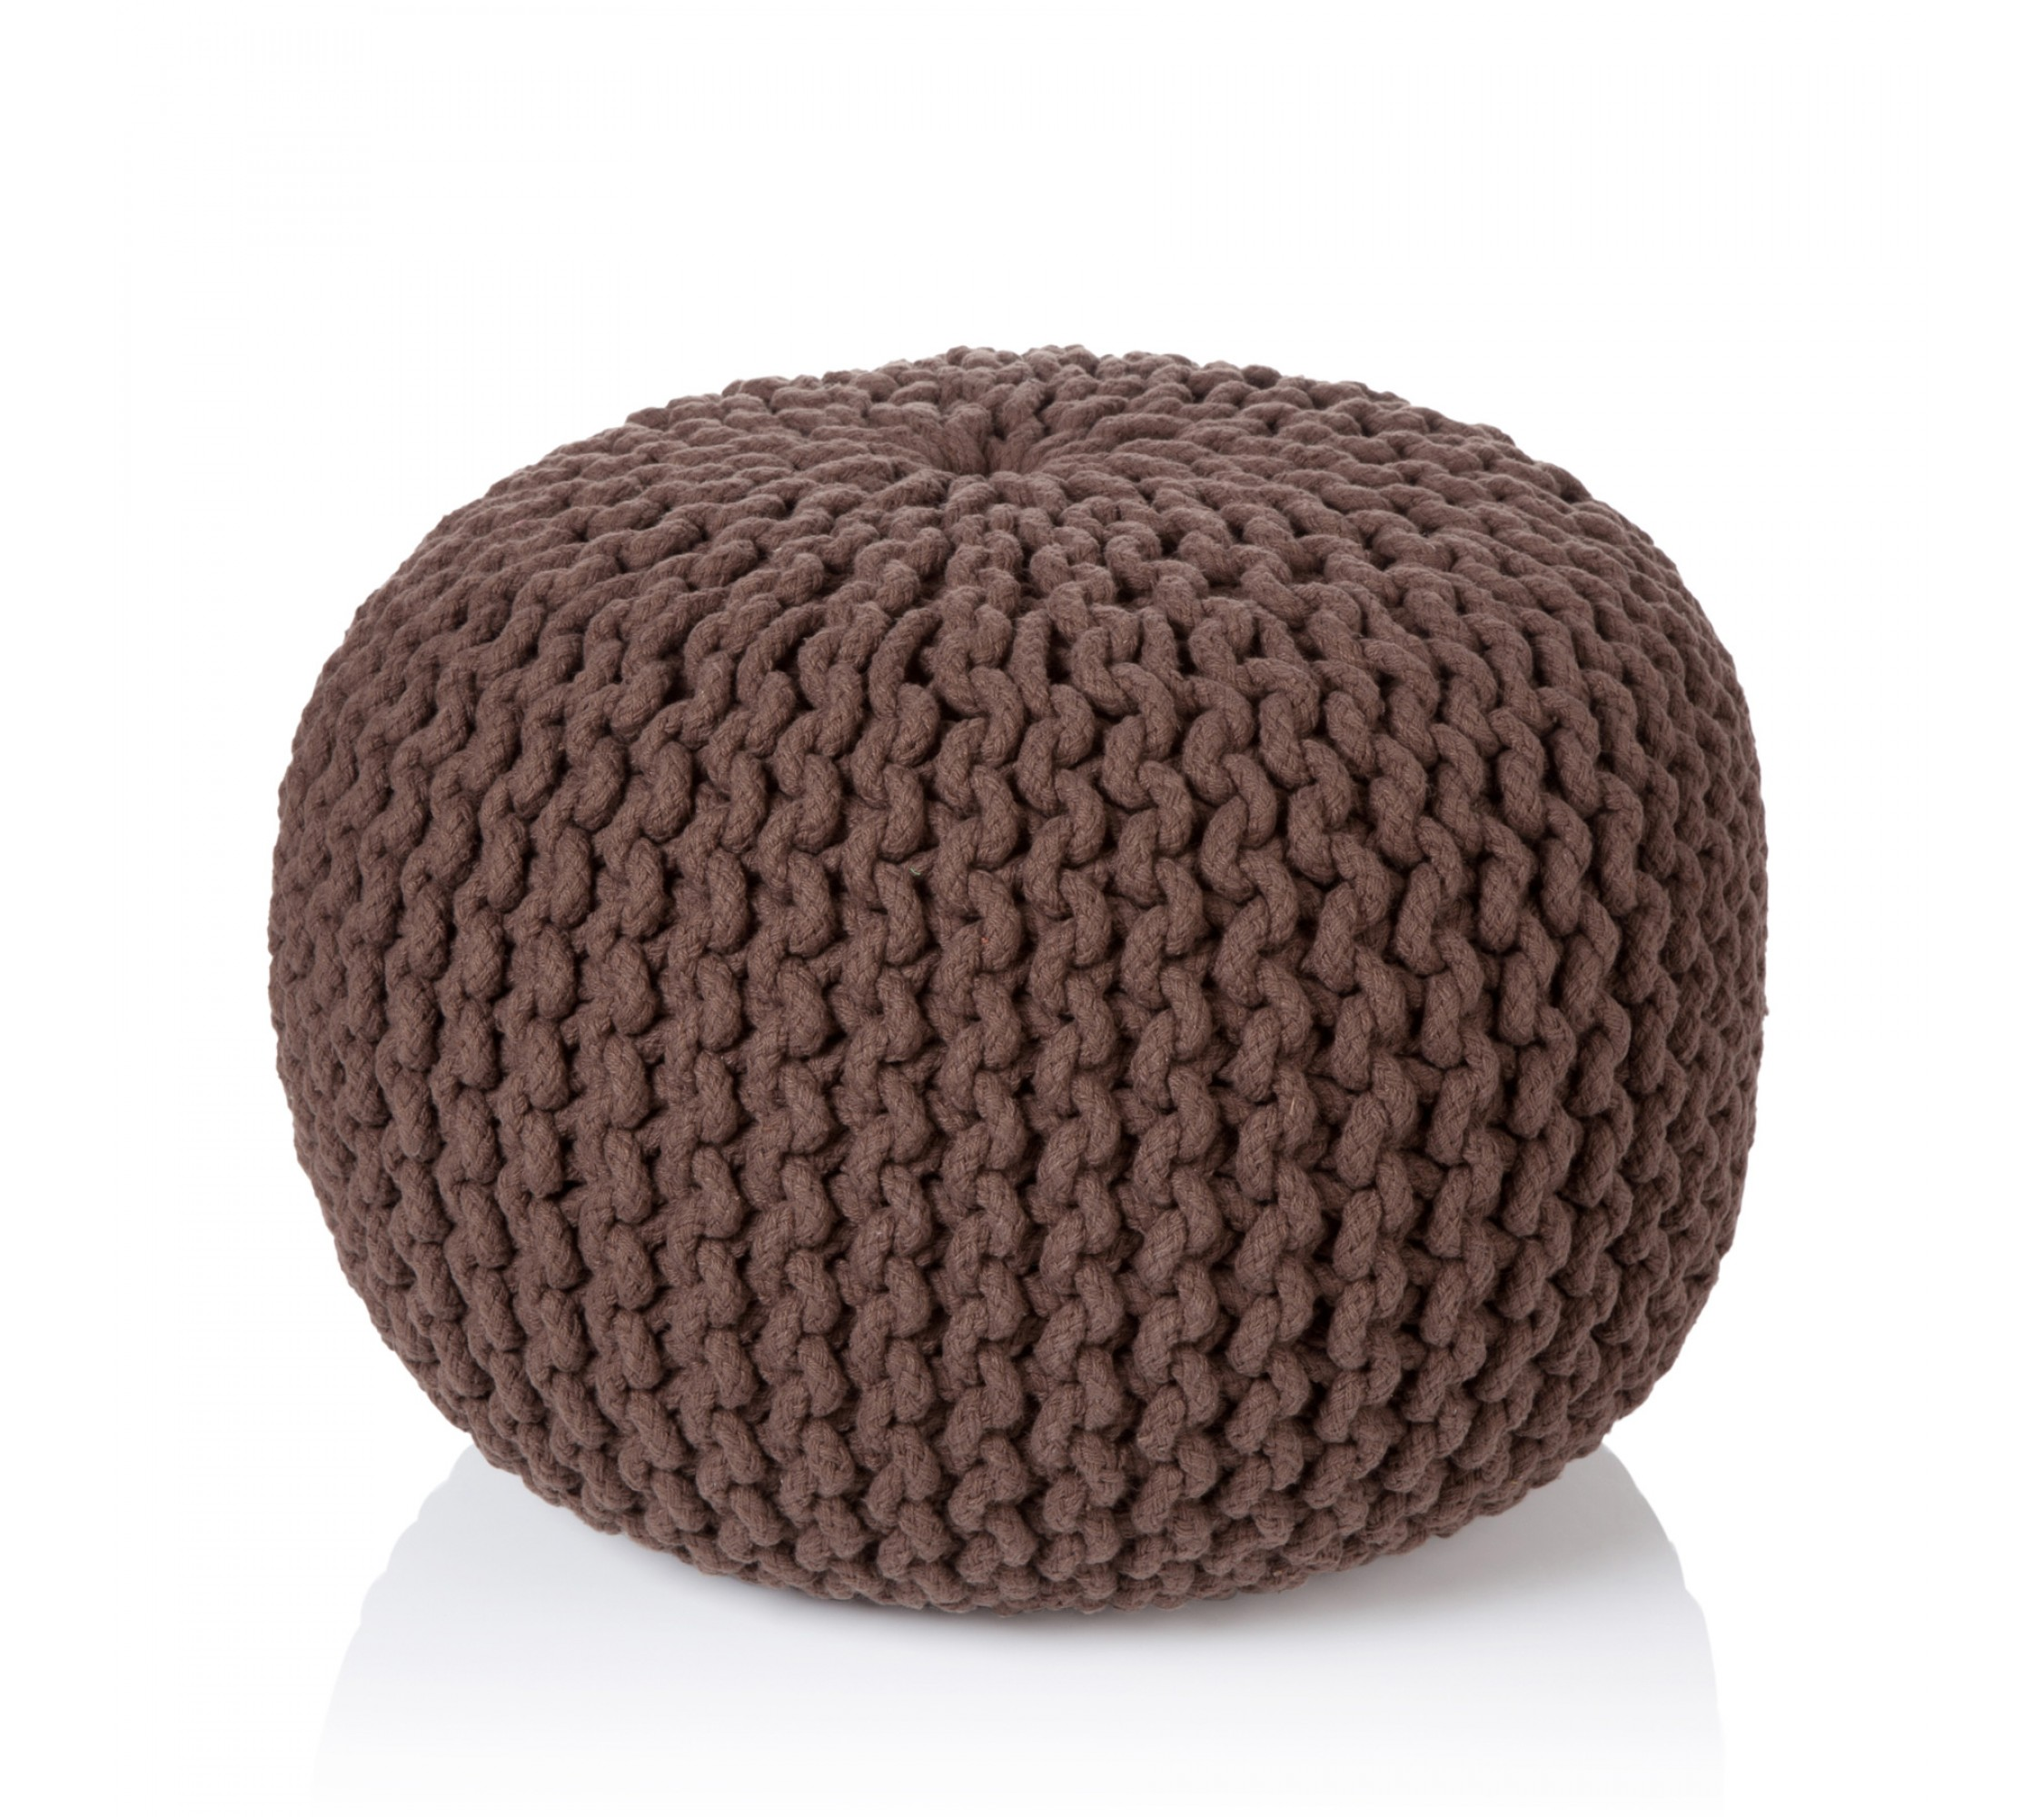 Strickpouf - Easy Sit brown